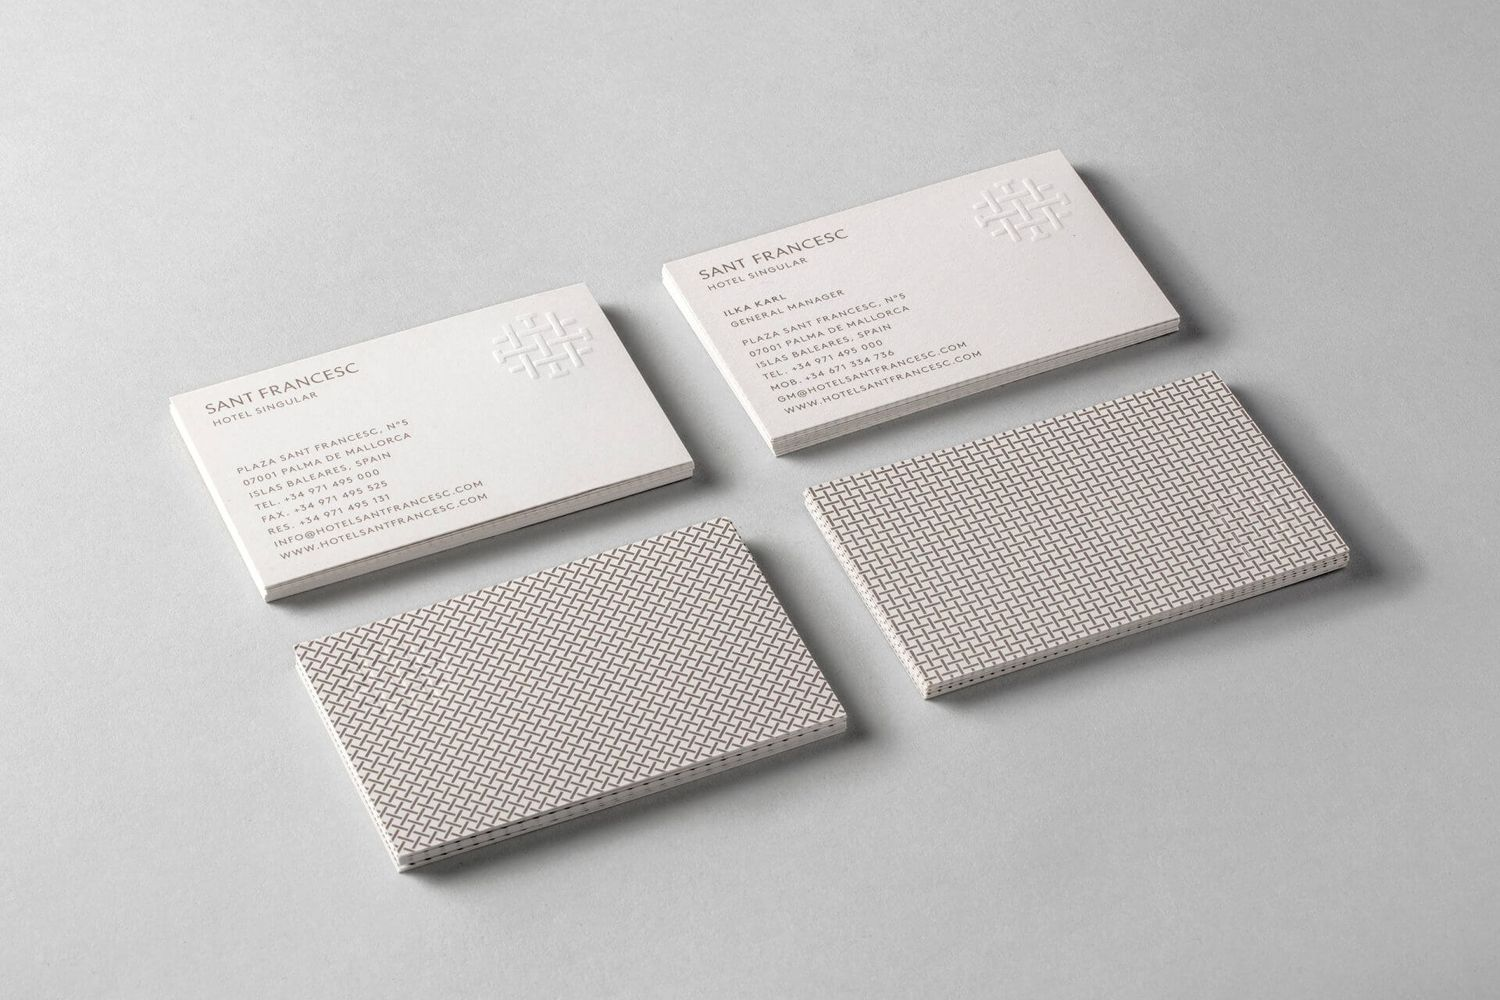 New logo brand identity for sant francesc by mucho bpo brand identity and blind embossed business cards designed by mucho for spanish 5 star hotel sant francesc reheart Images